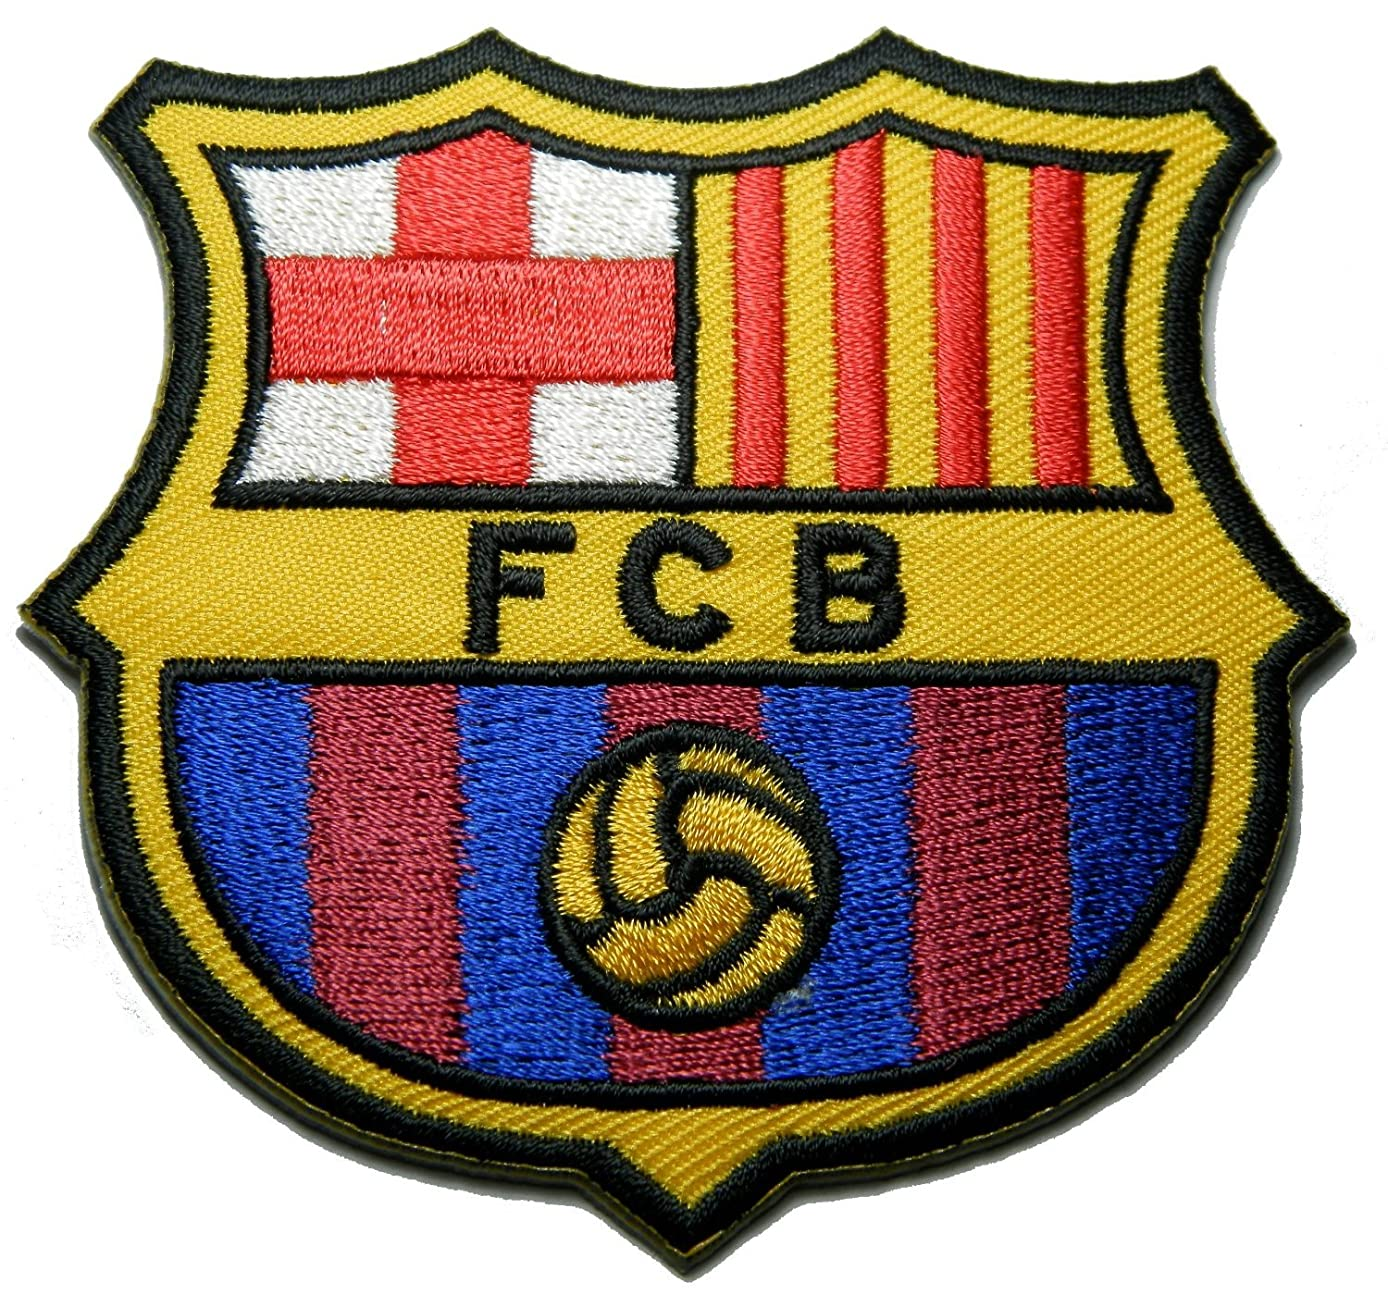 FCB Barcelona Espagne Fc Patch Patch Sew Iron on Logo Embroidered Badge Sign Emblem Costume BY Dreamhigh_skyland